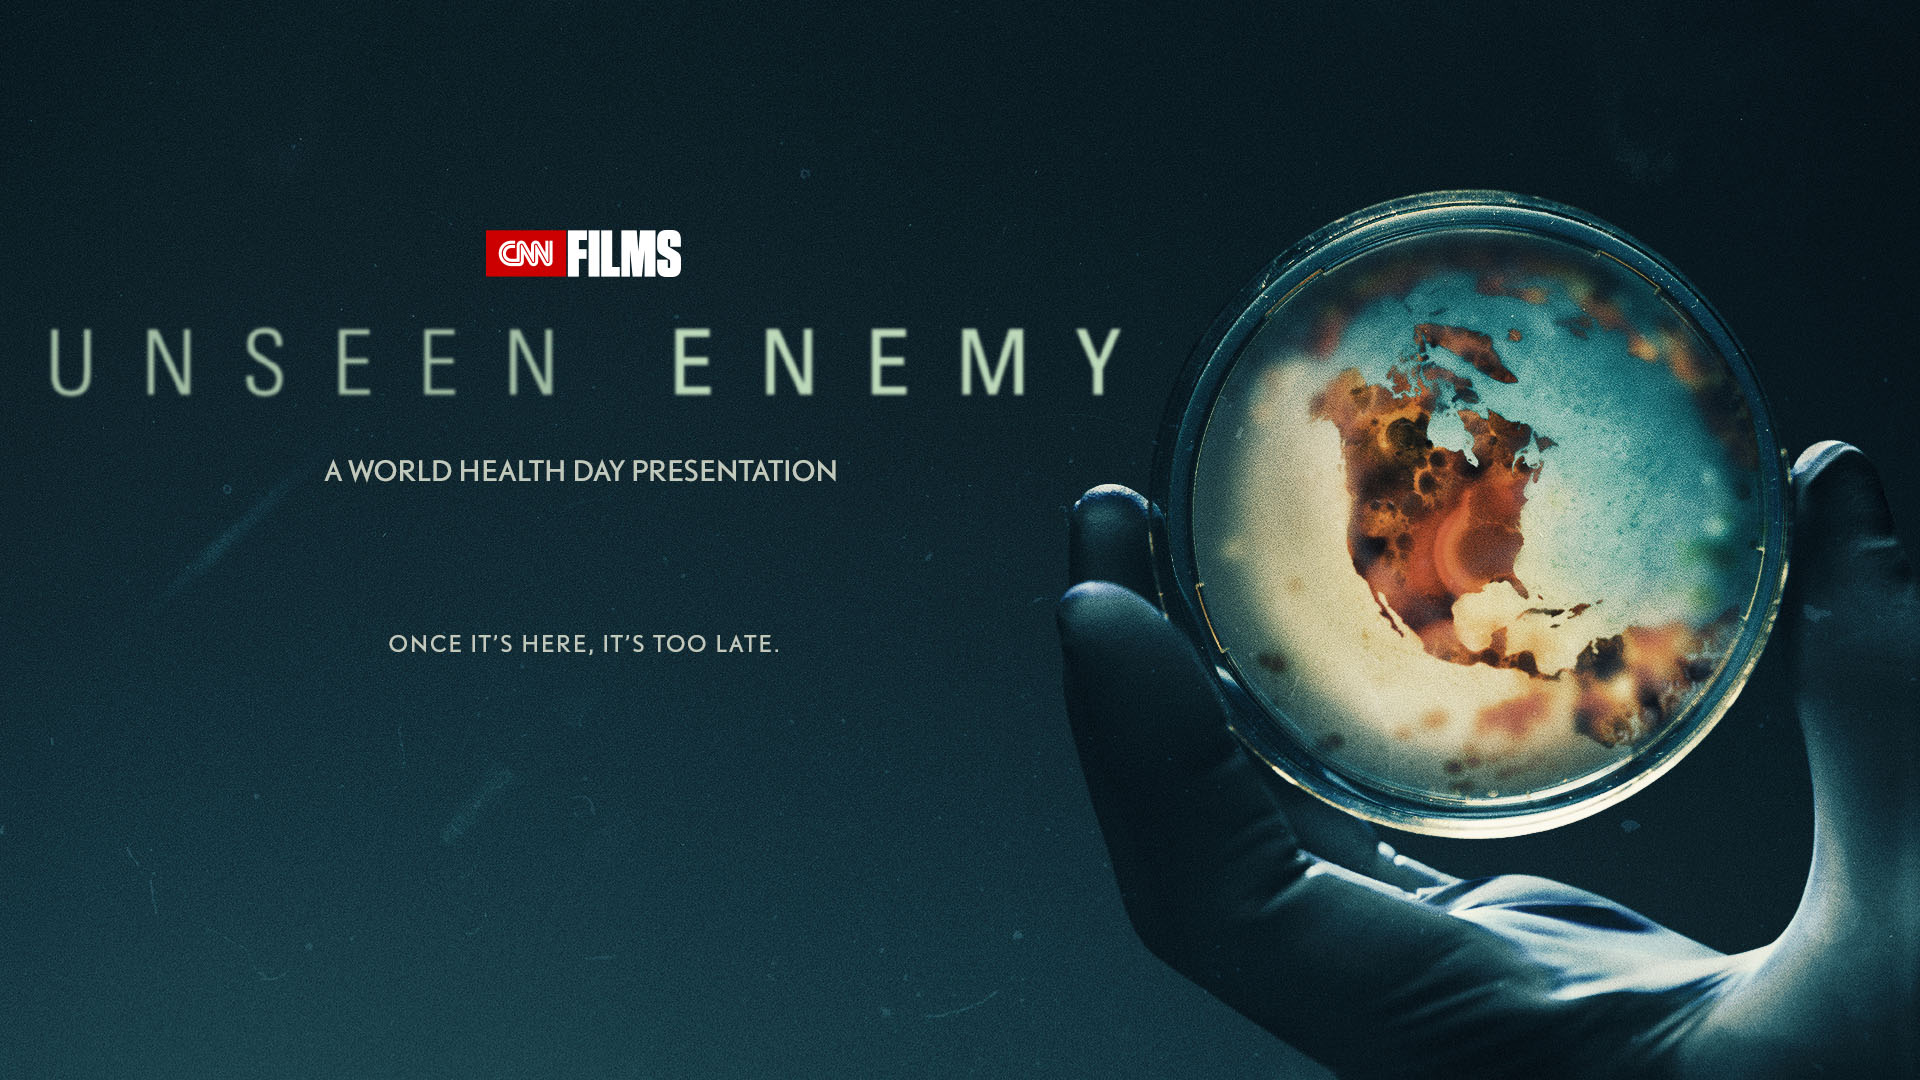 CNN Films Debuts UNSEEN ENEMY for World Health Day Presentation